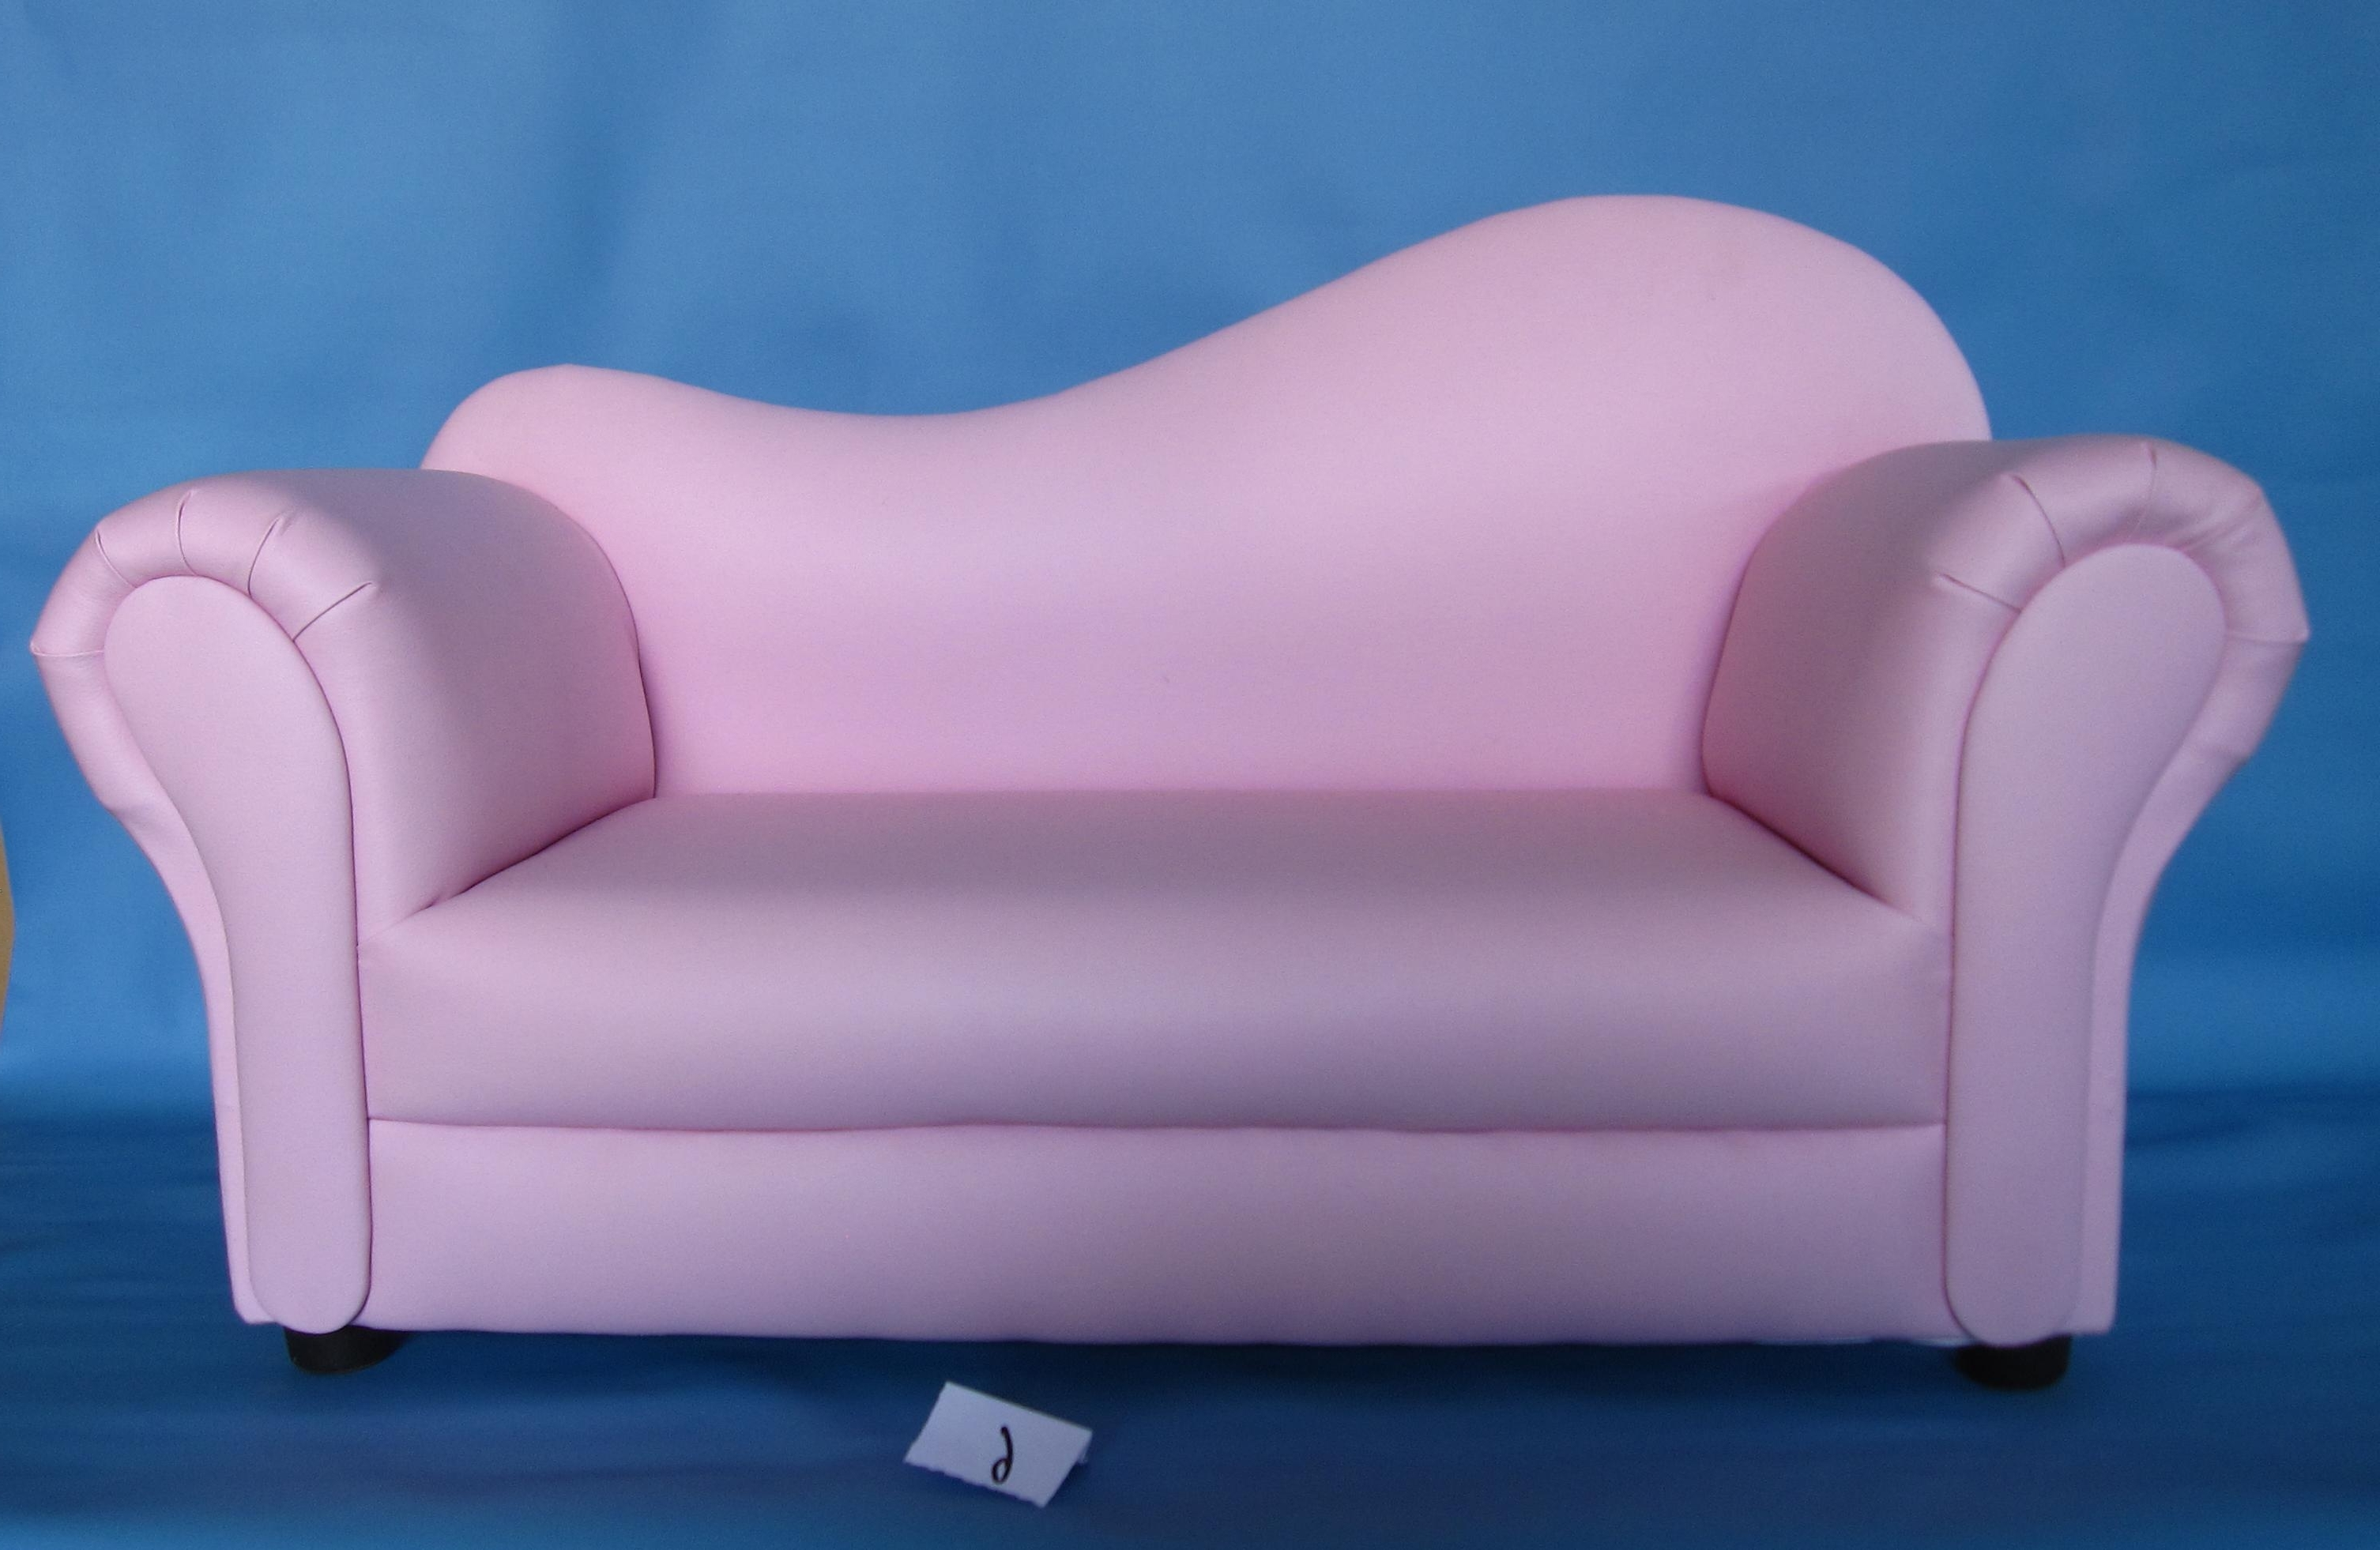 Current Sofa : Sofa Chairs For Children Children's Flip Chair Children's Within Childrens Sofas (View 9 of 20)